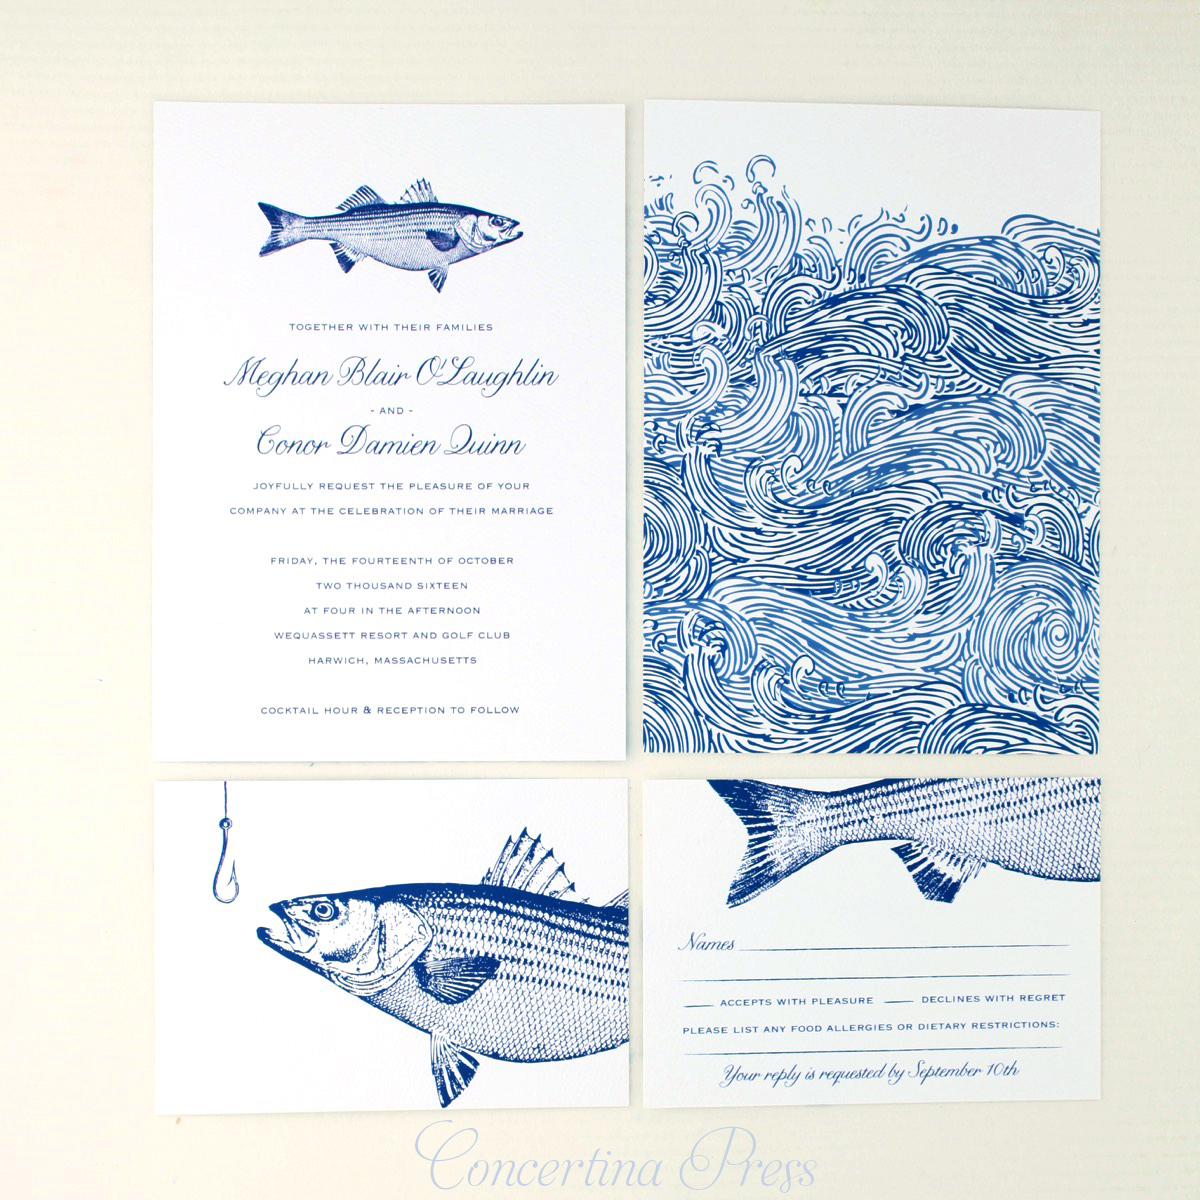 Striped Bass Wedding Invitation from Concertina Press - double sided with waves